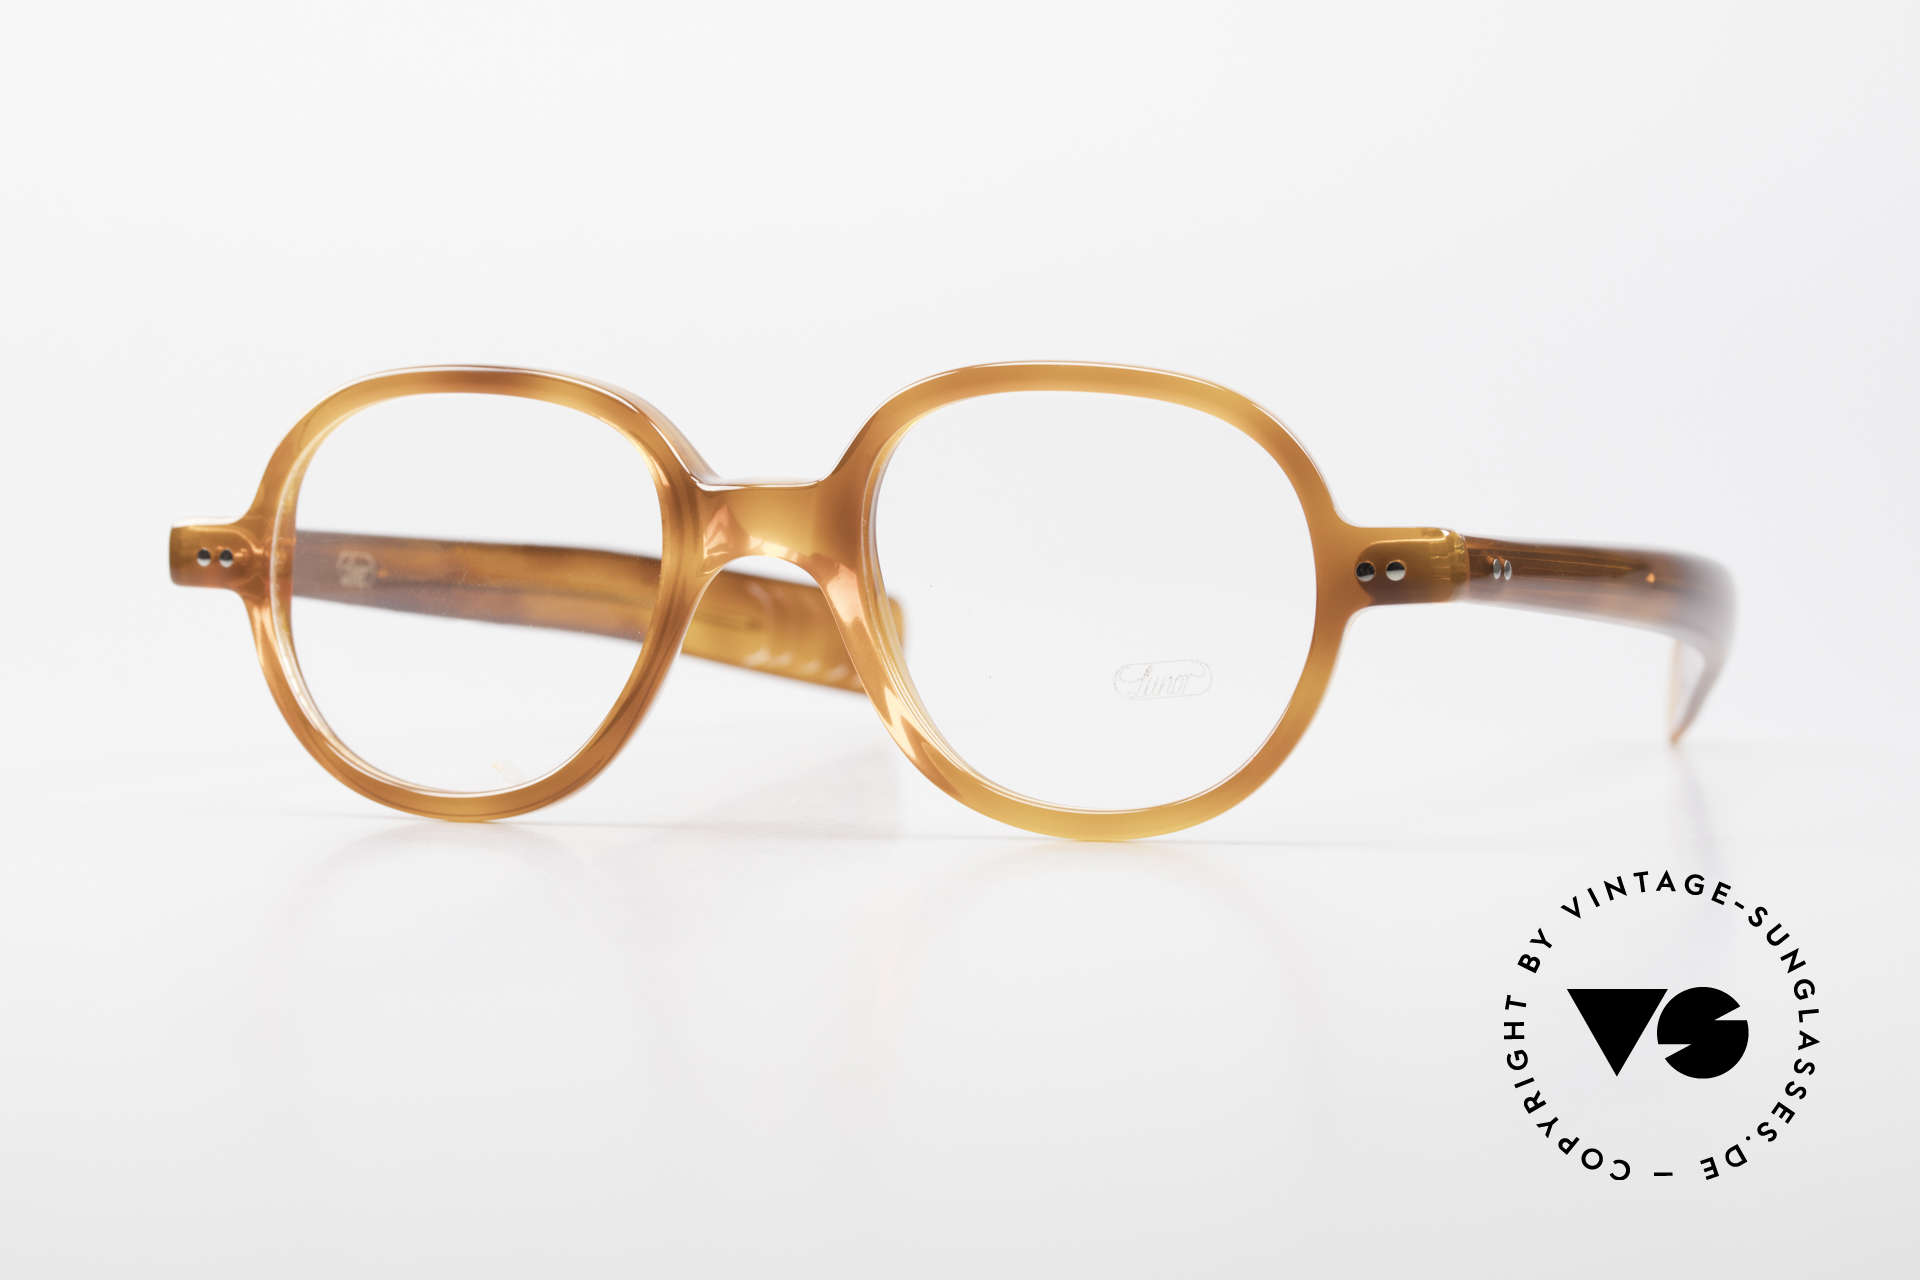 Lunor A50 Round Panto Acetate Glasses, LUNOR glasses, model 50 from the Acetate collection, Made for Men and Women